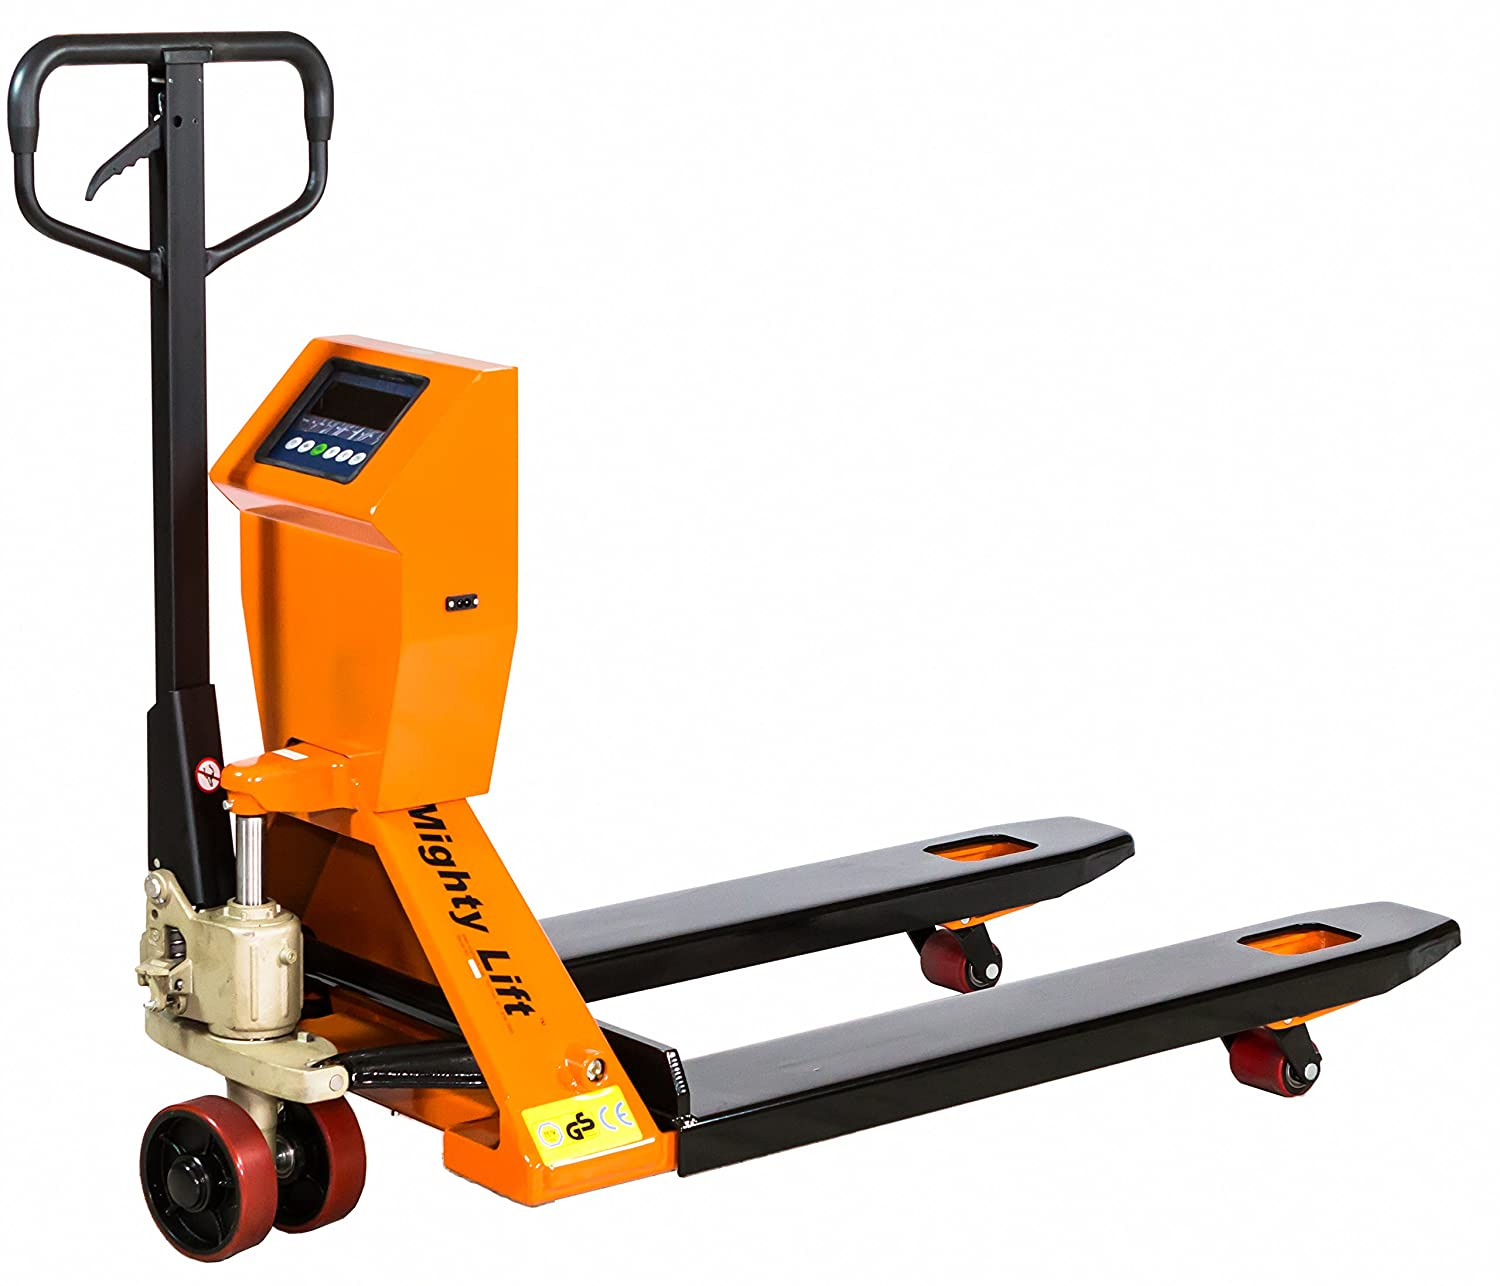 Tracked Pallet Jack: Mighty Lift SPT50 Scale Pallet Jack/Truck, 4400 Lb